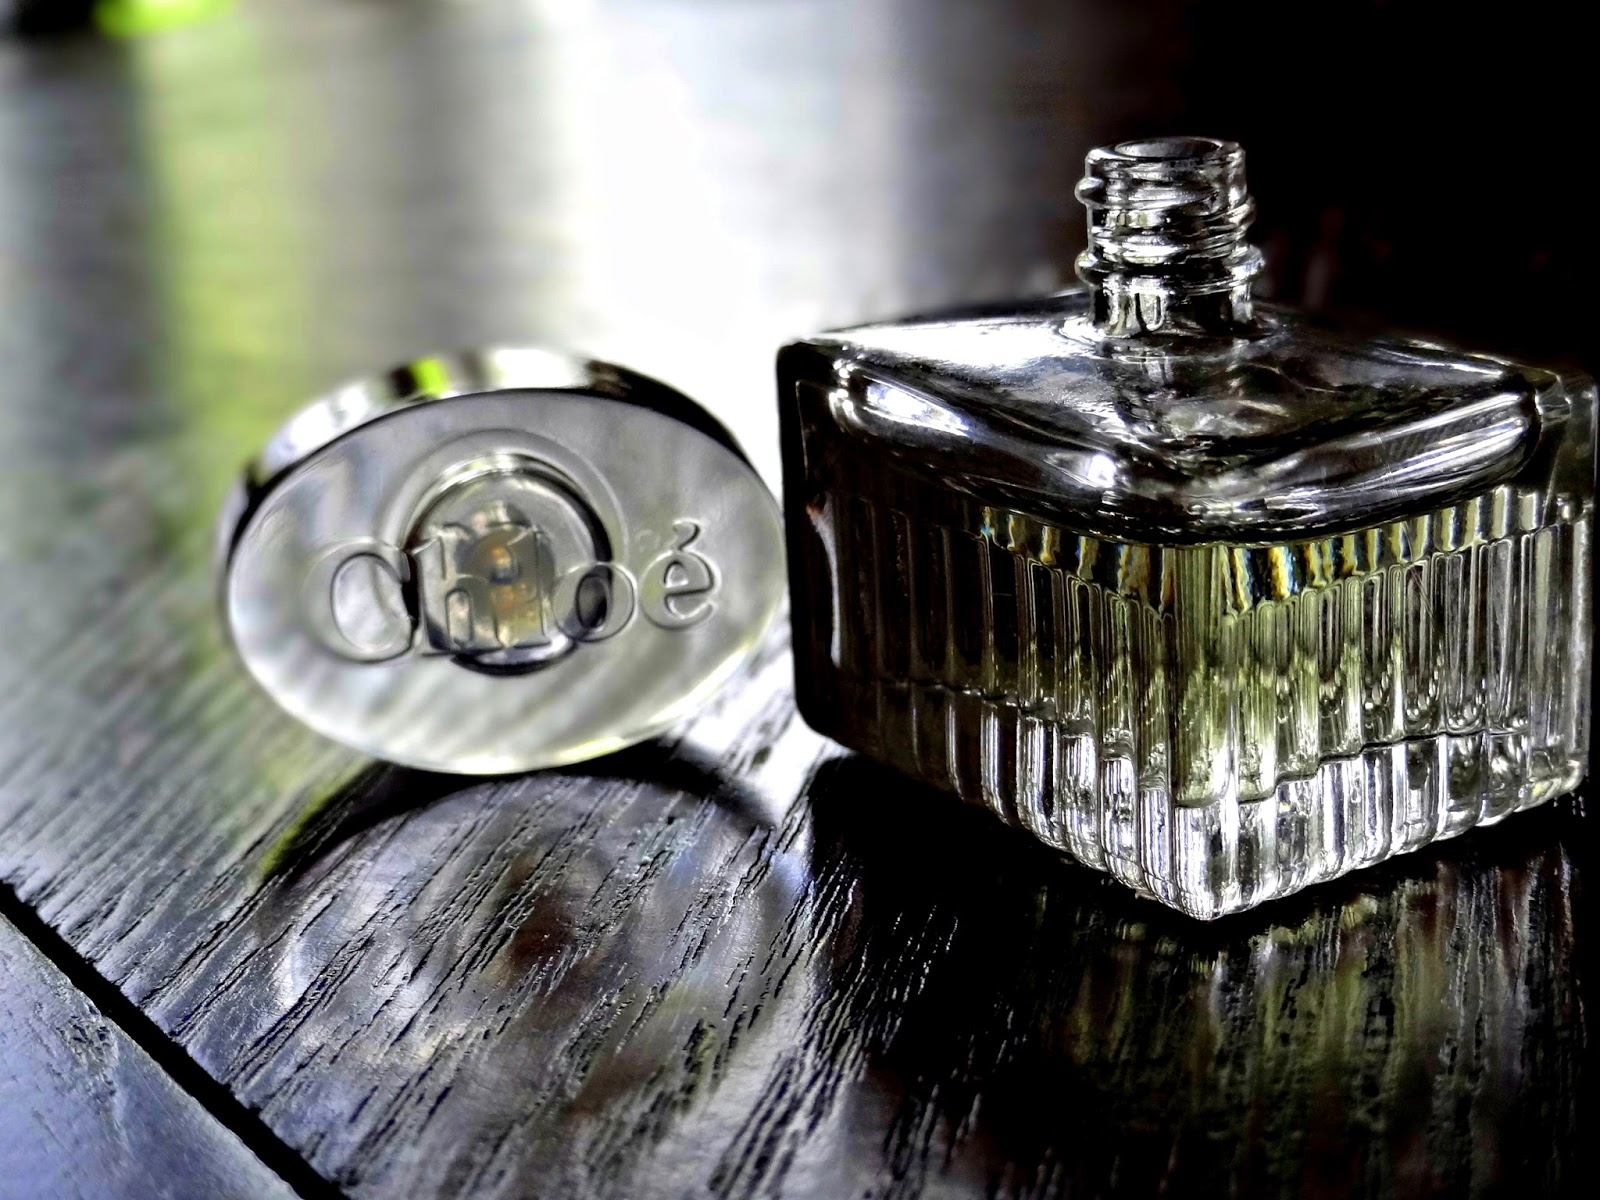 L'Eau de Chloe by Chloe Eau de Toilette Review, Photos